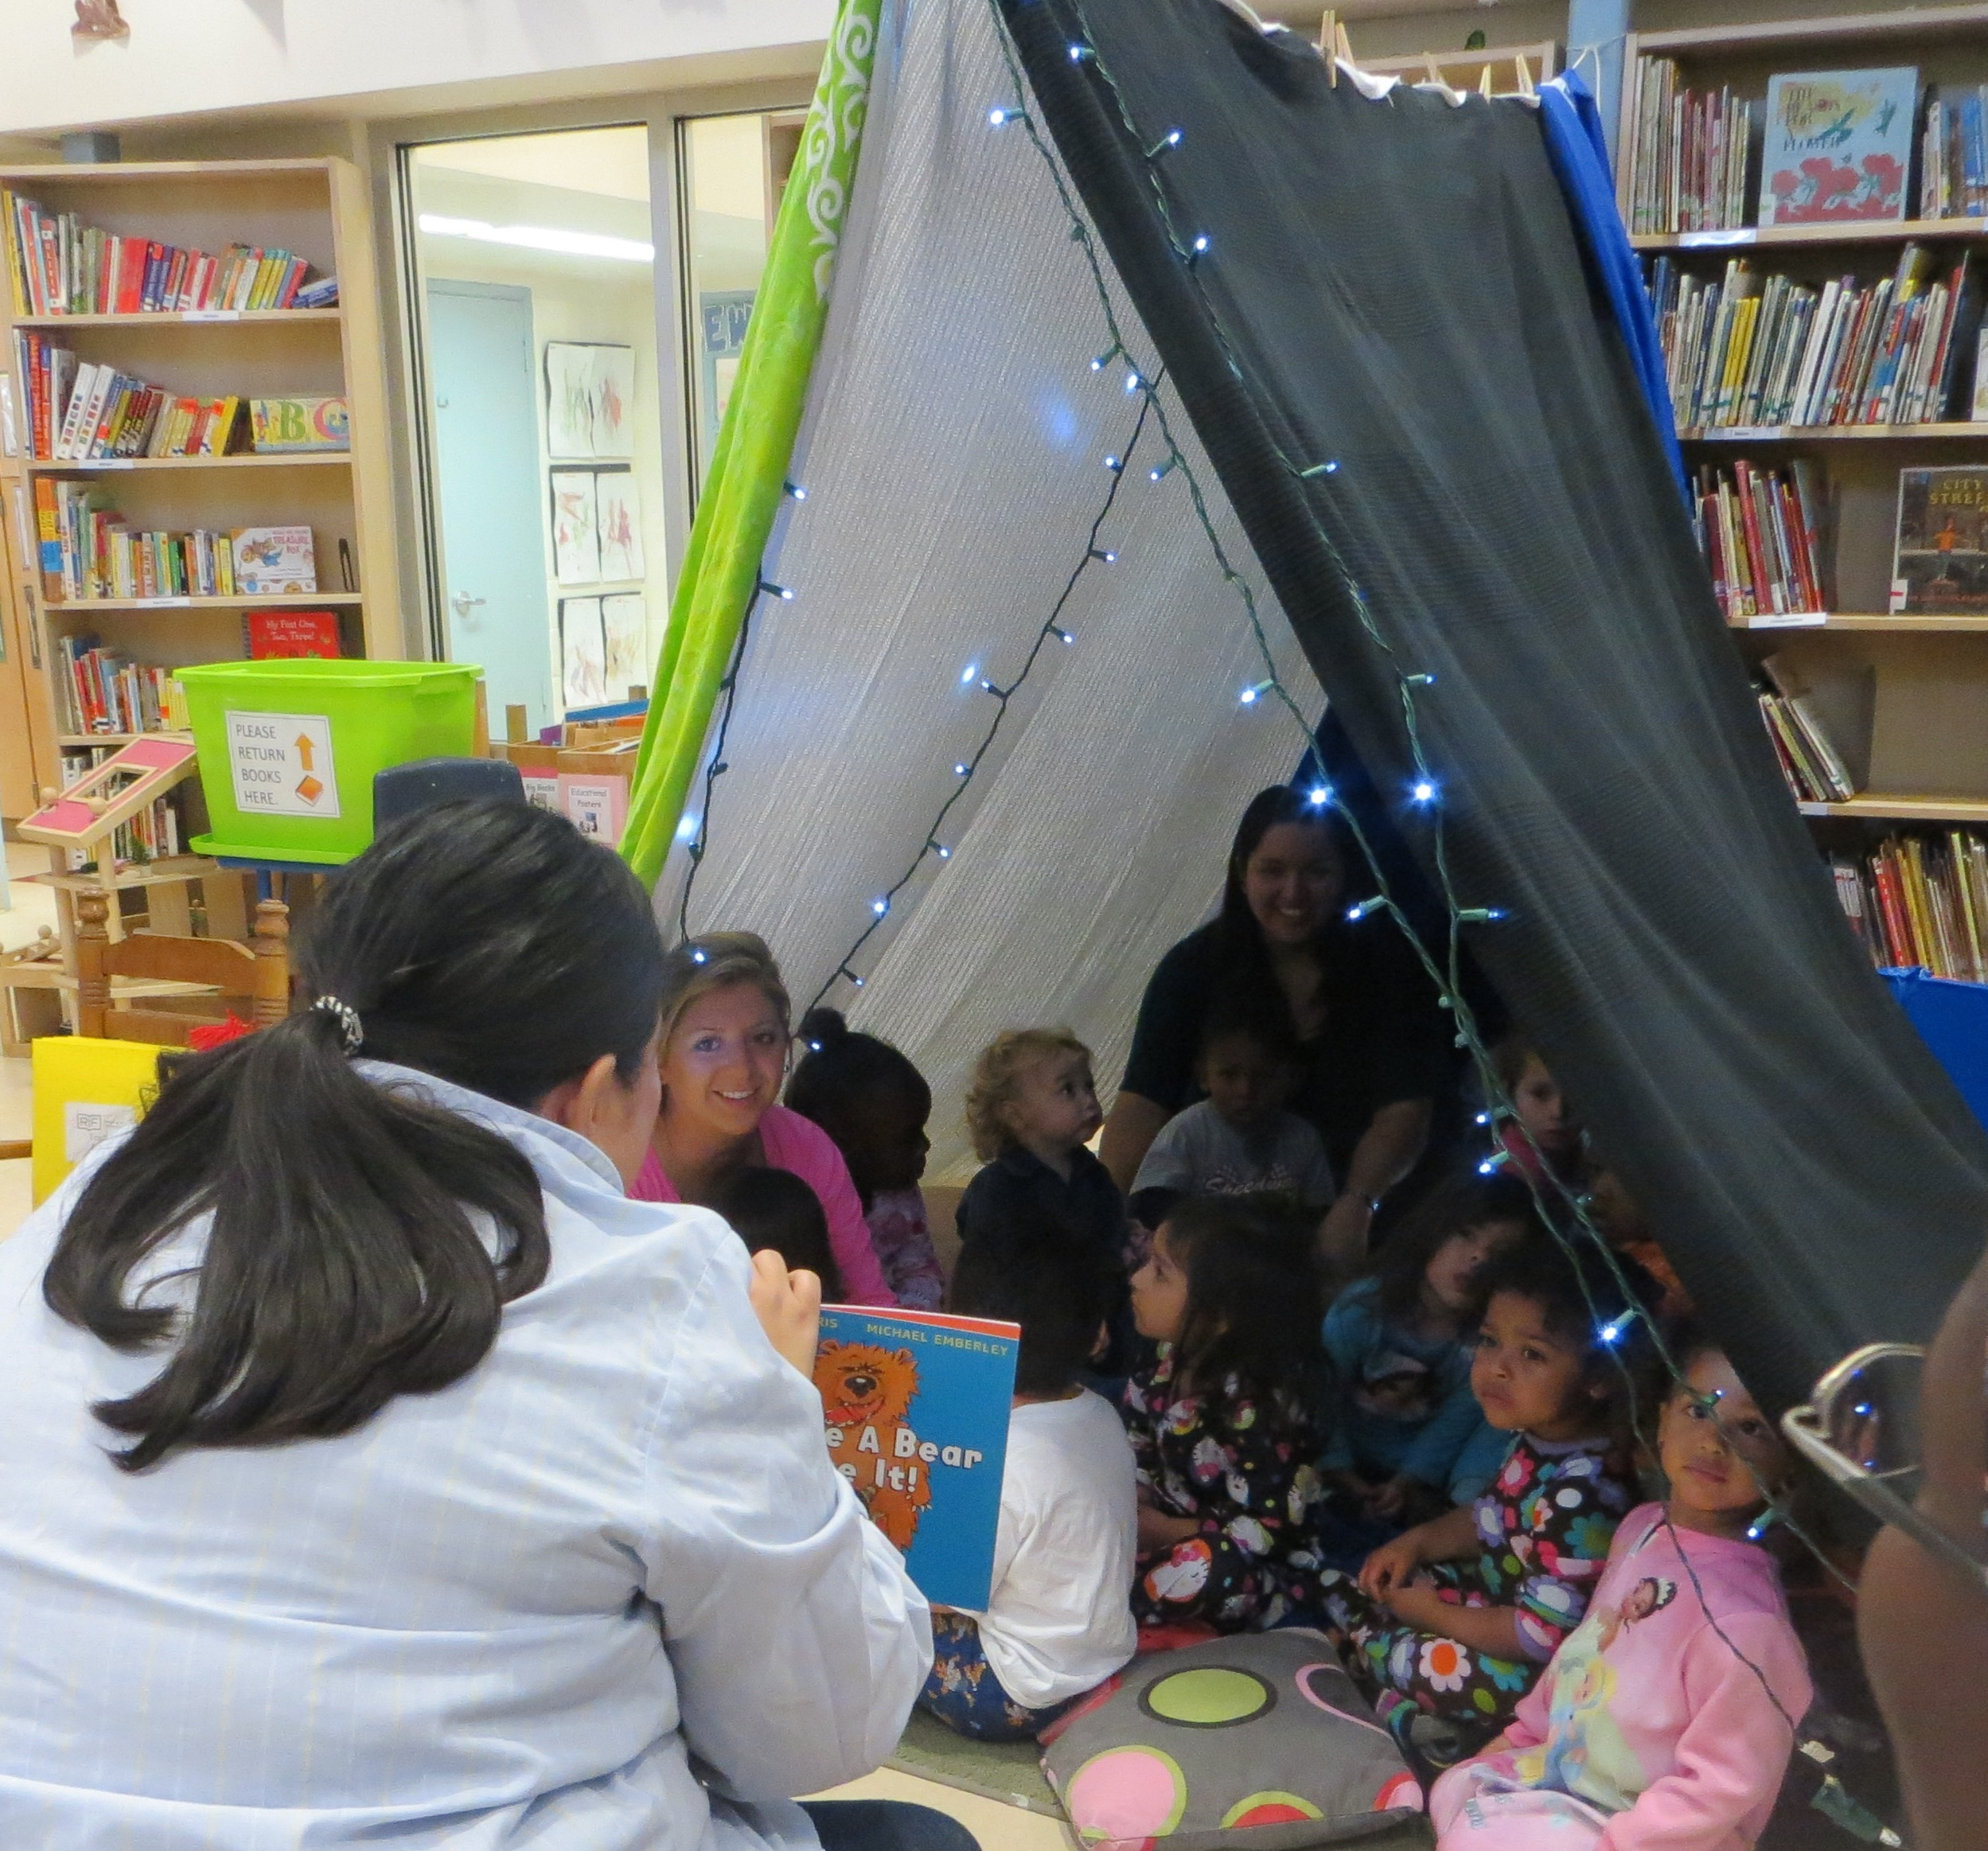 Grasshoppers enjoy a good book under the fort in celebration of RIF day.